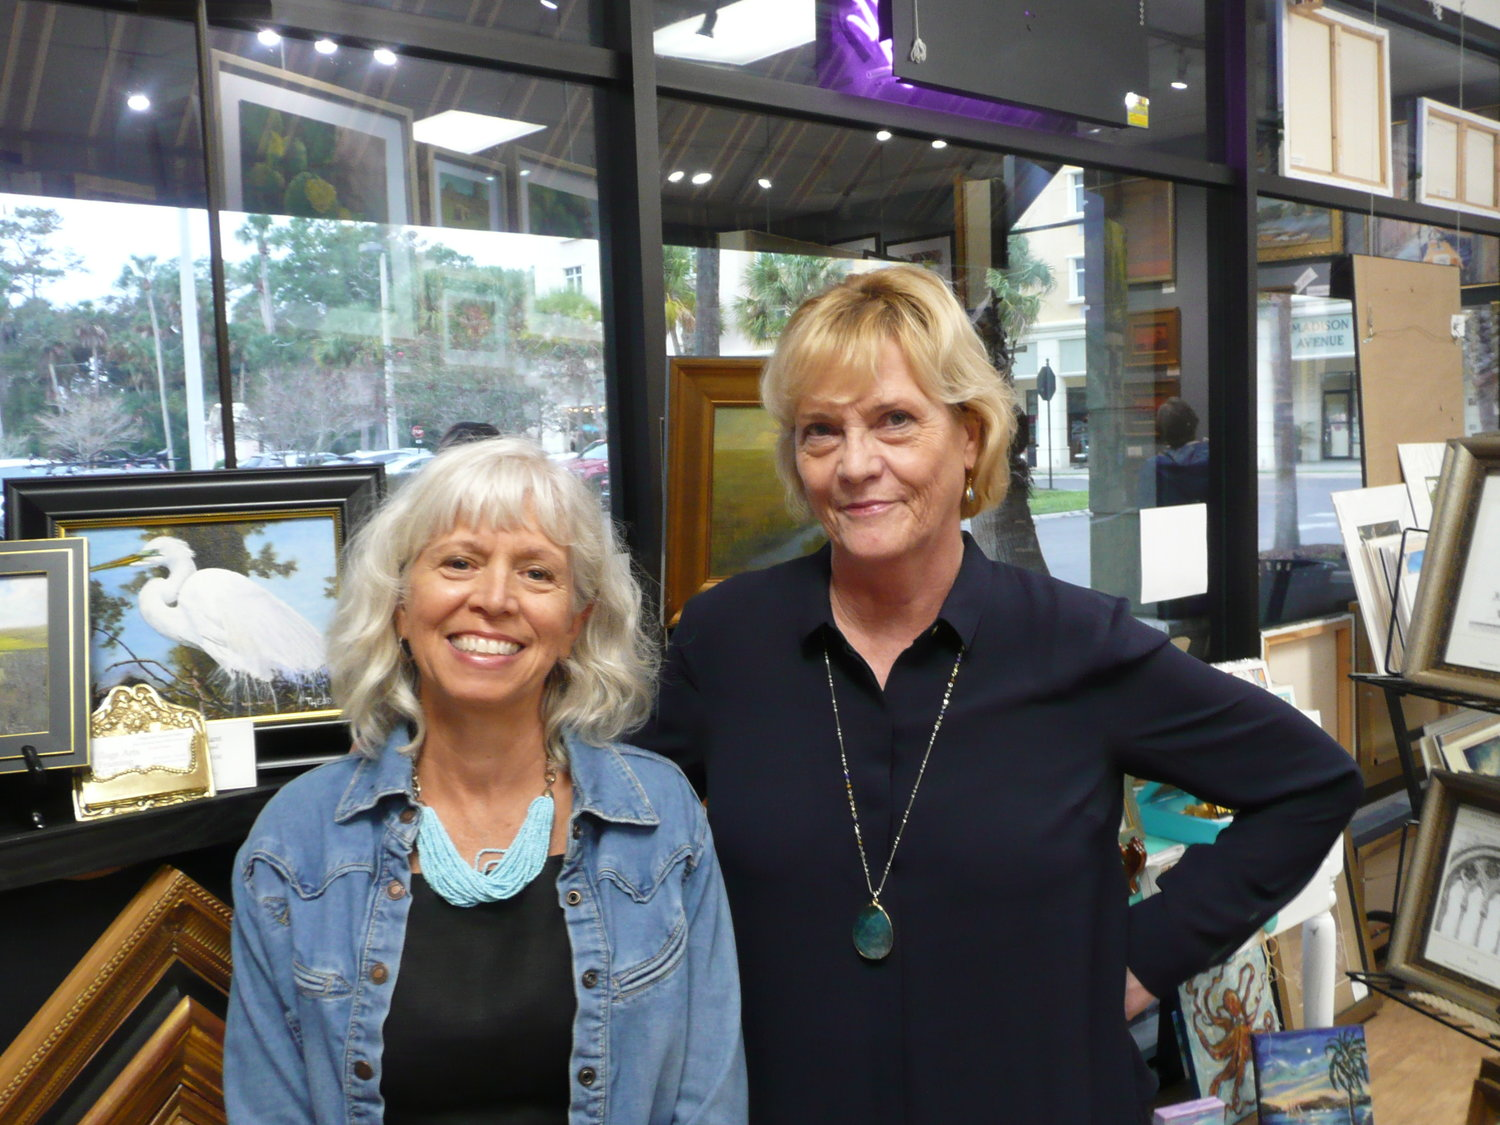 Lisa Cederberg-Local Artist, Pamela Keegan-Owner